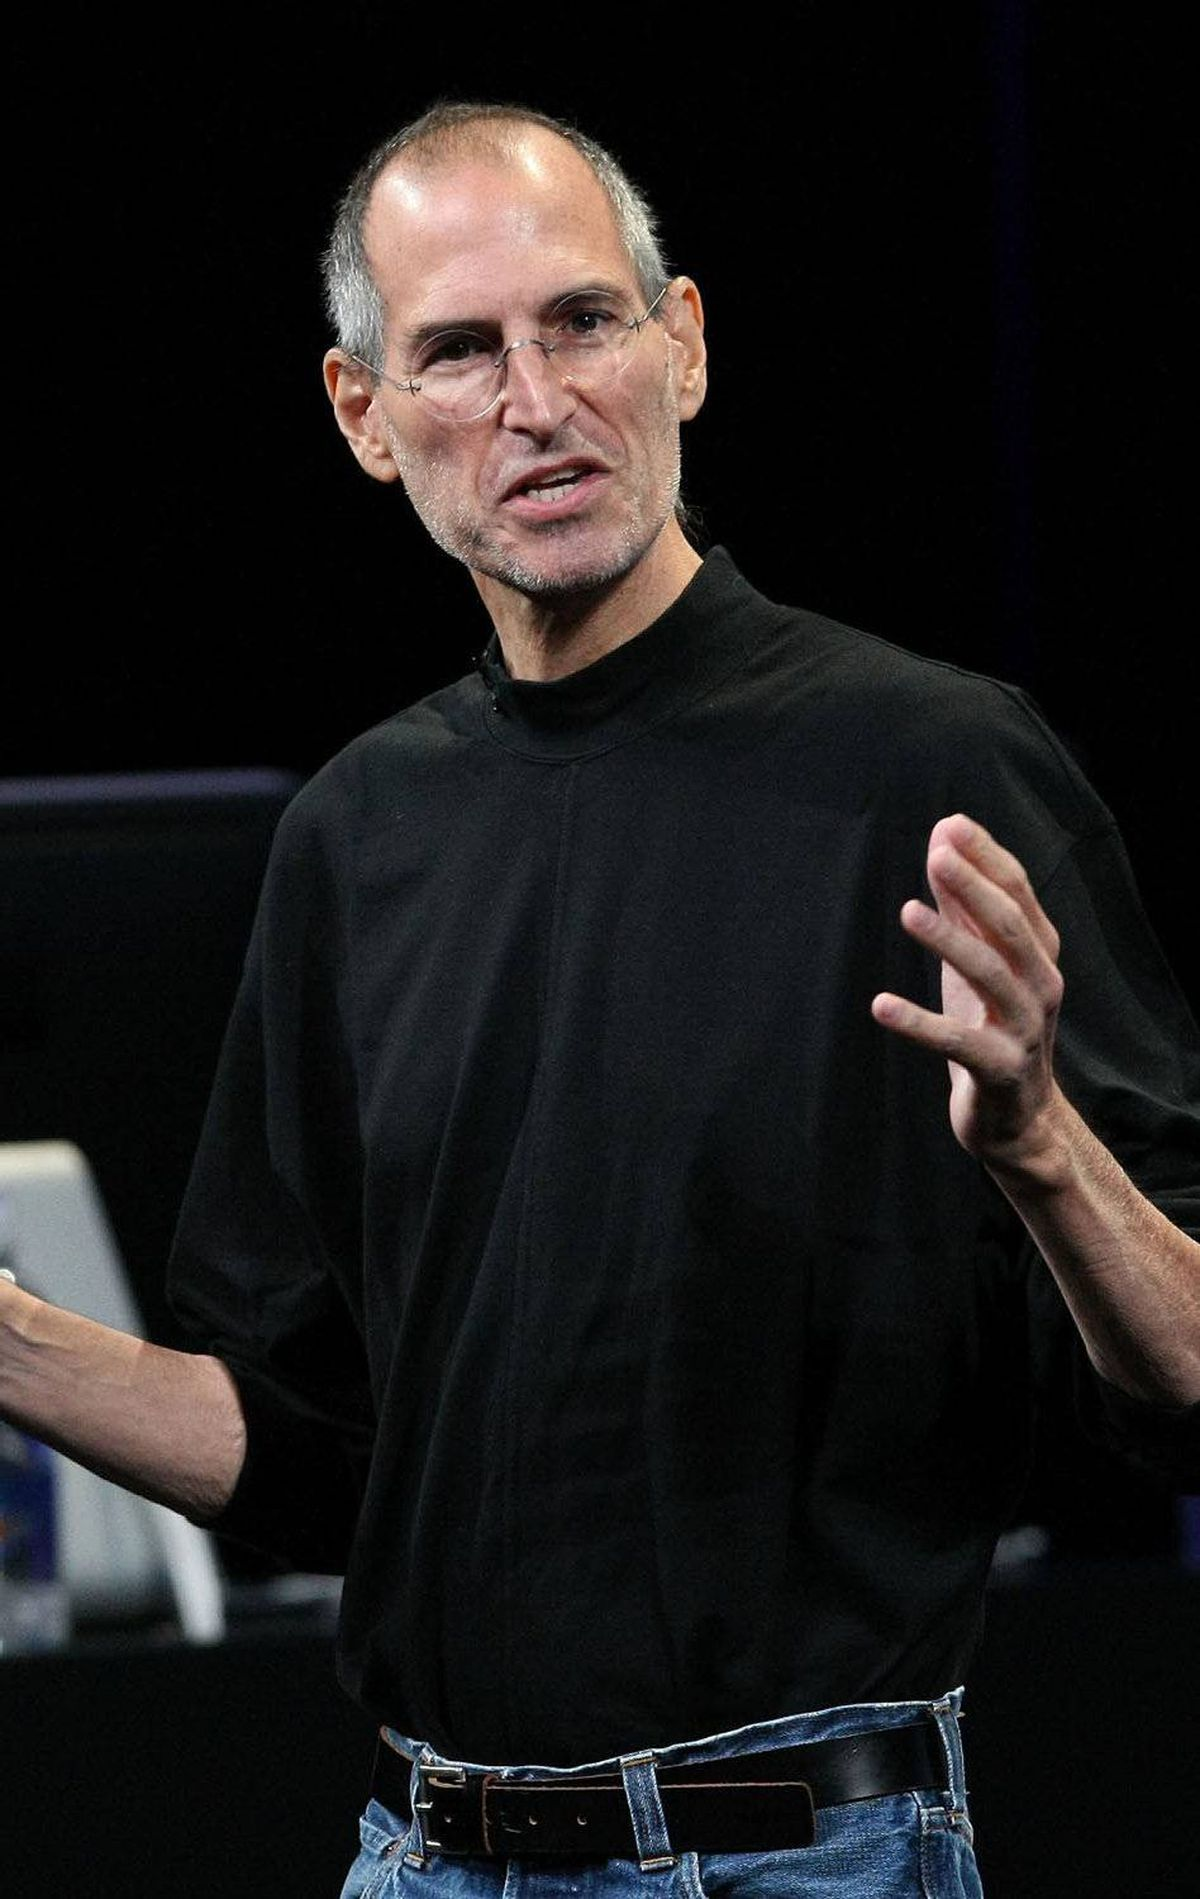 Mr. Jobs speaks during a special event Sept. 9, 2009 in San Francisco, California. Apple debuted iTunes 9 during the presentation.